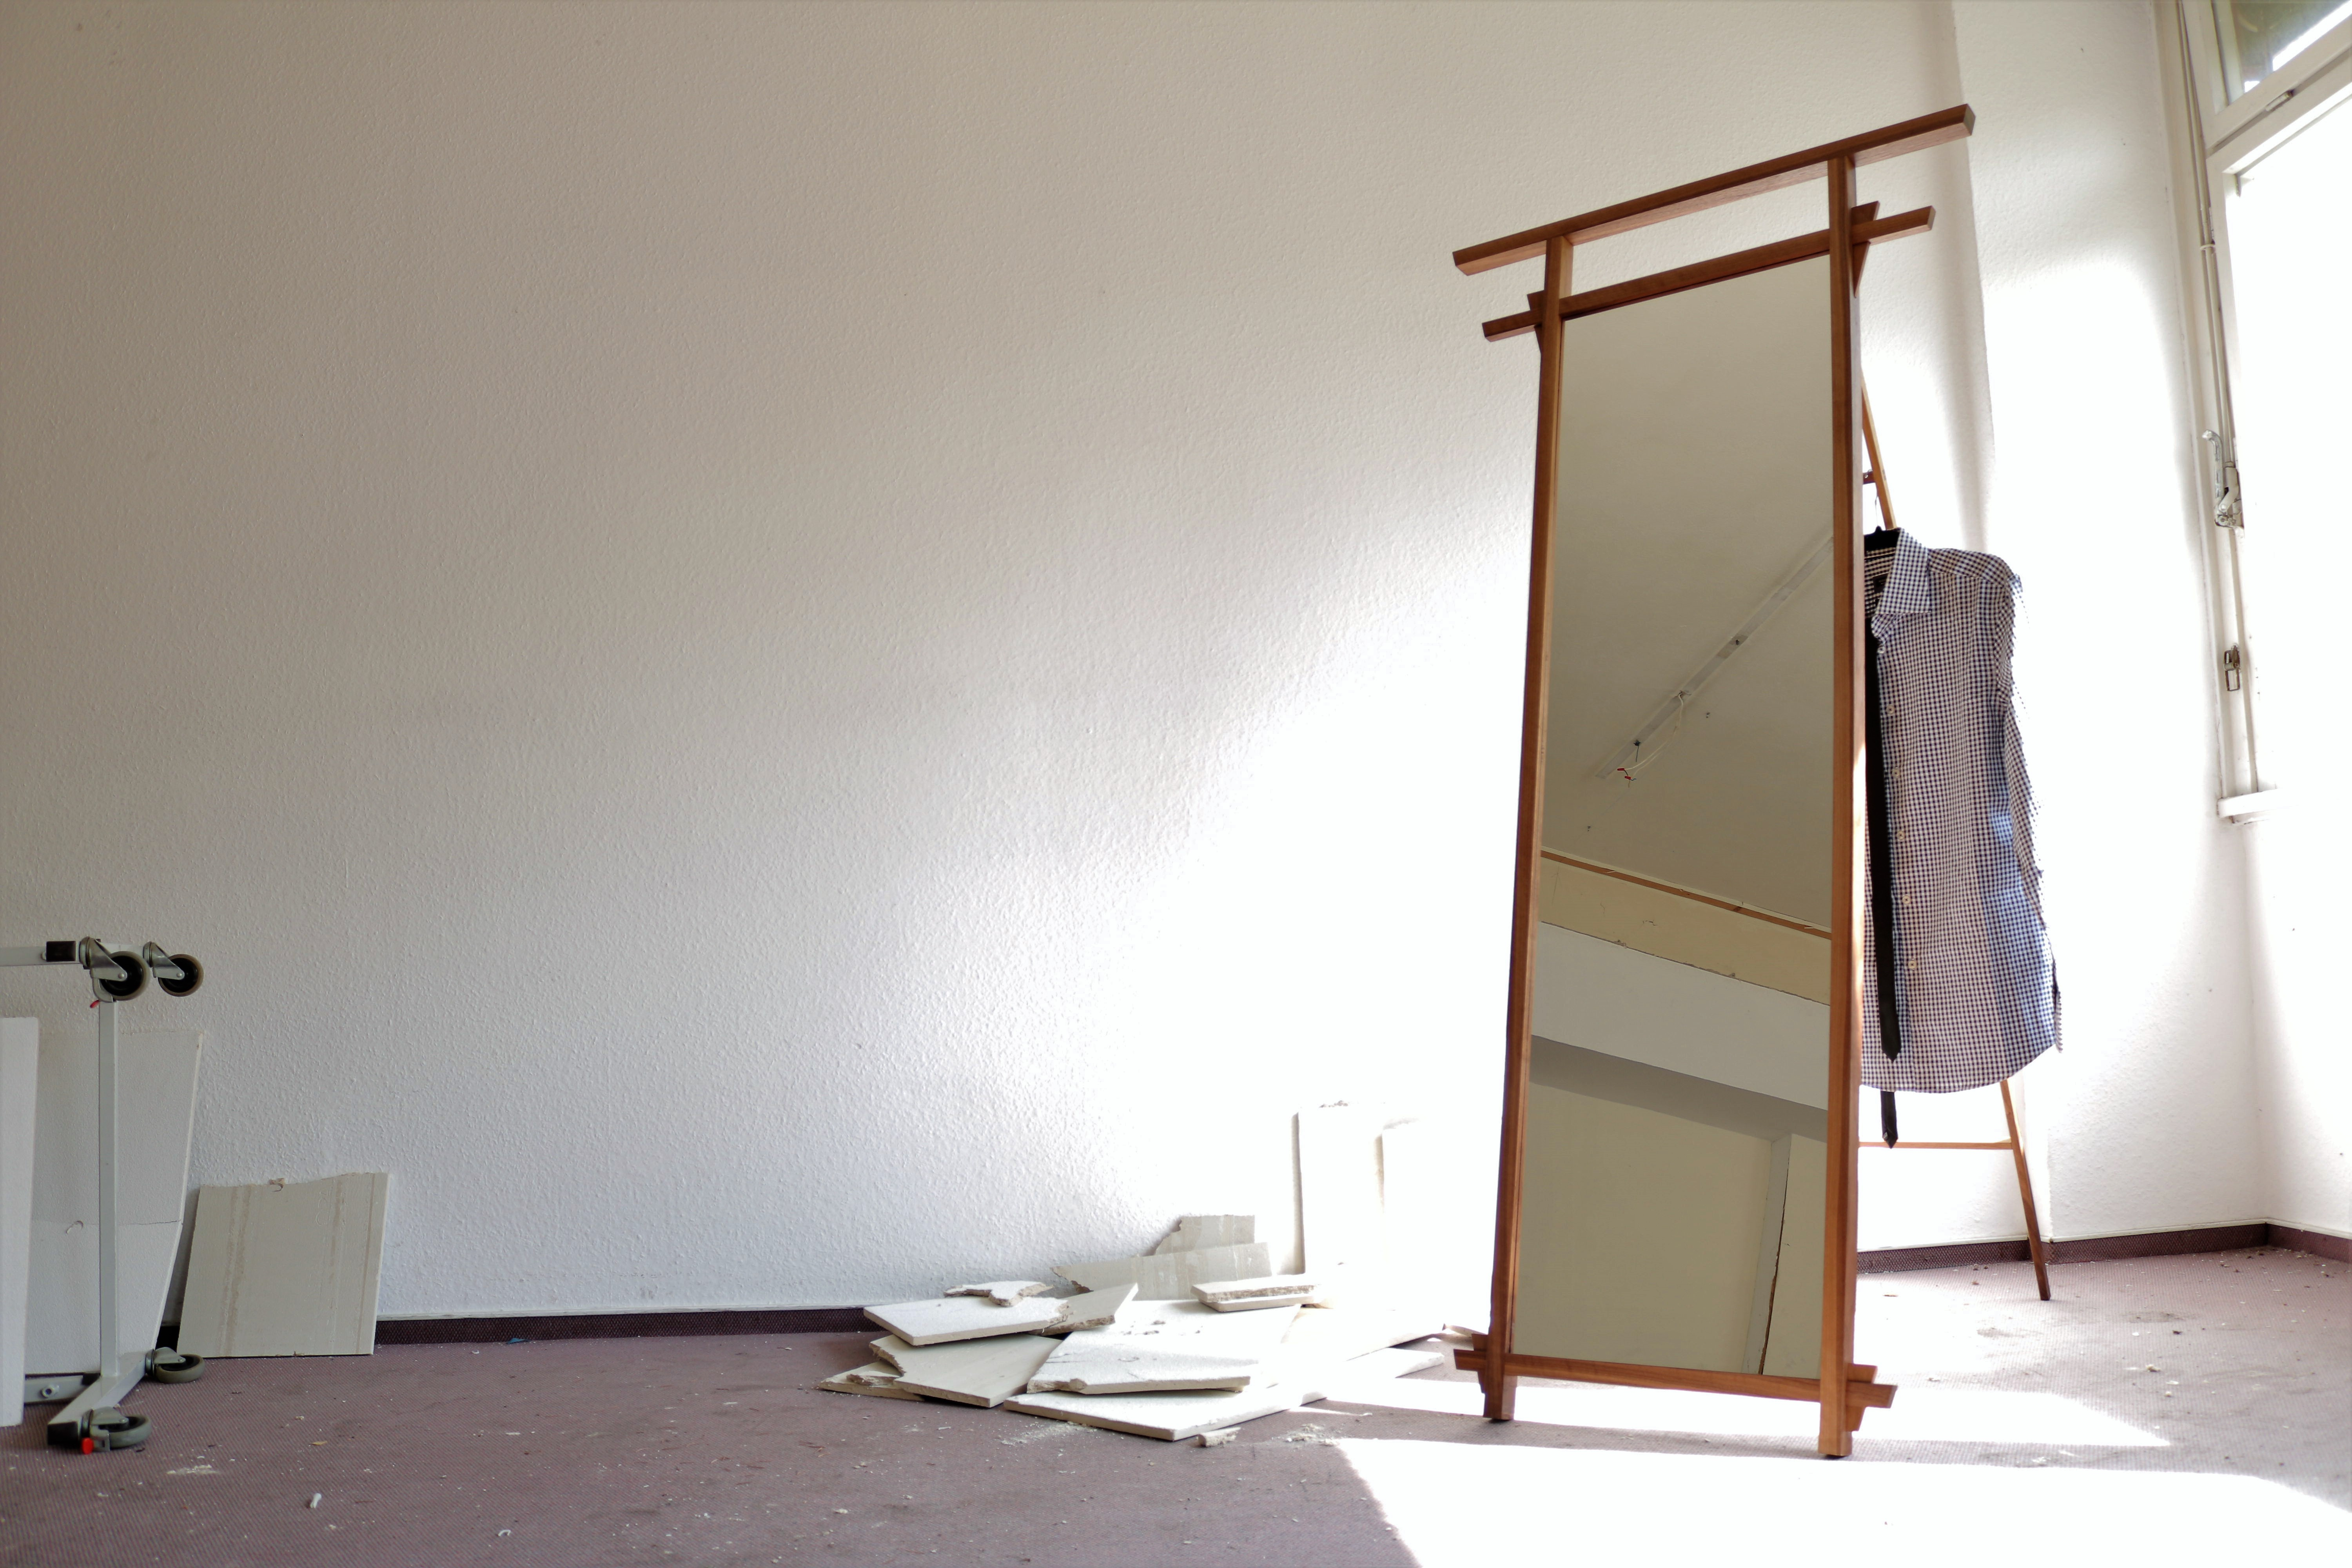 Picture of Assemble the Mirror Frame